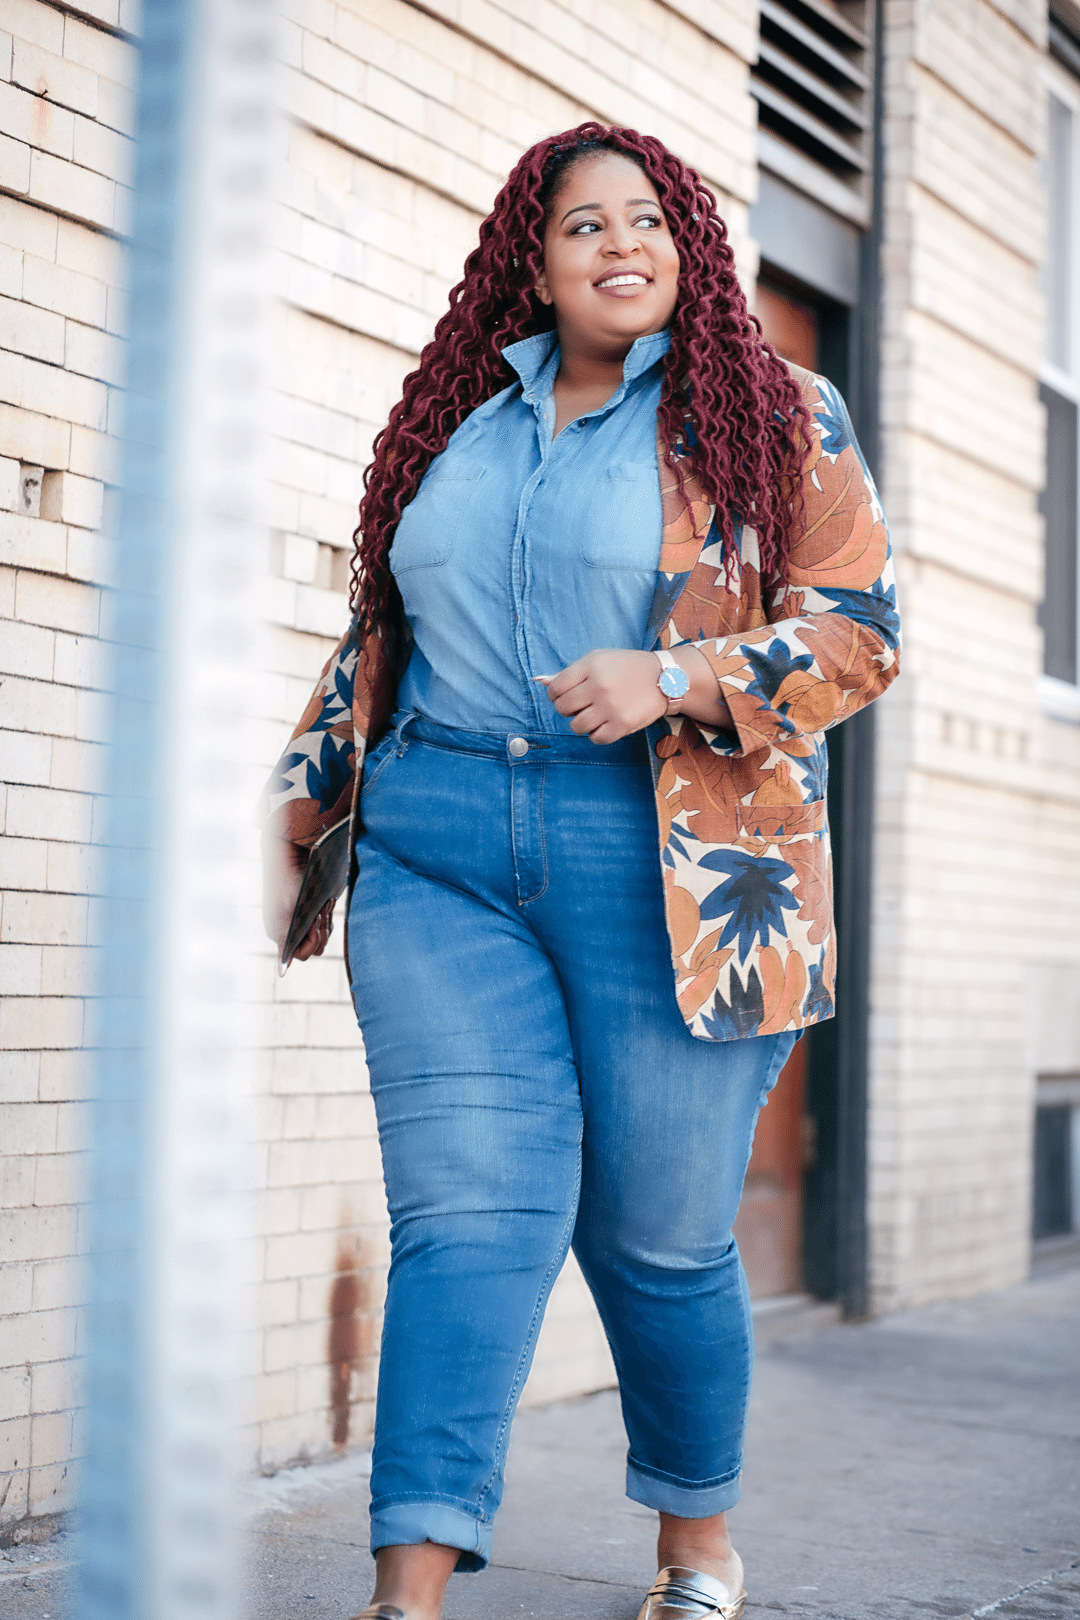 plus size thrift shopping